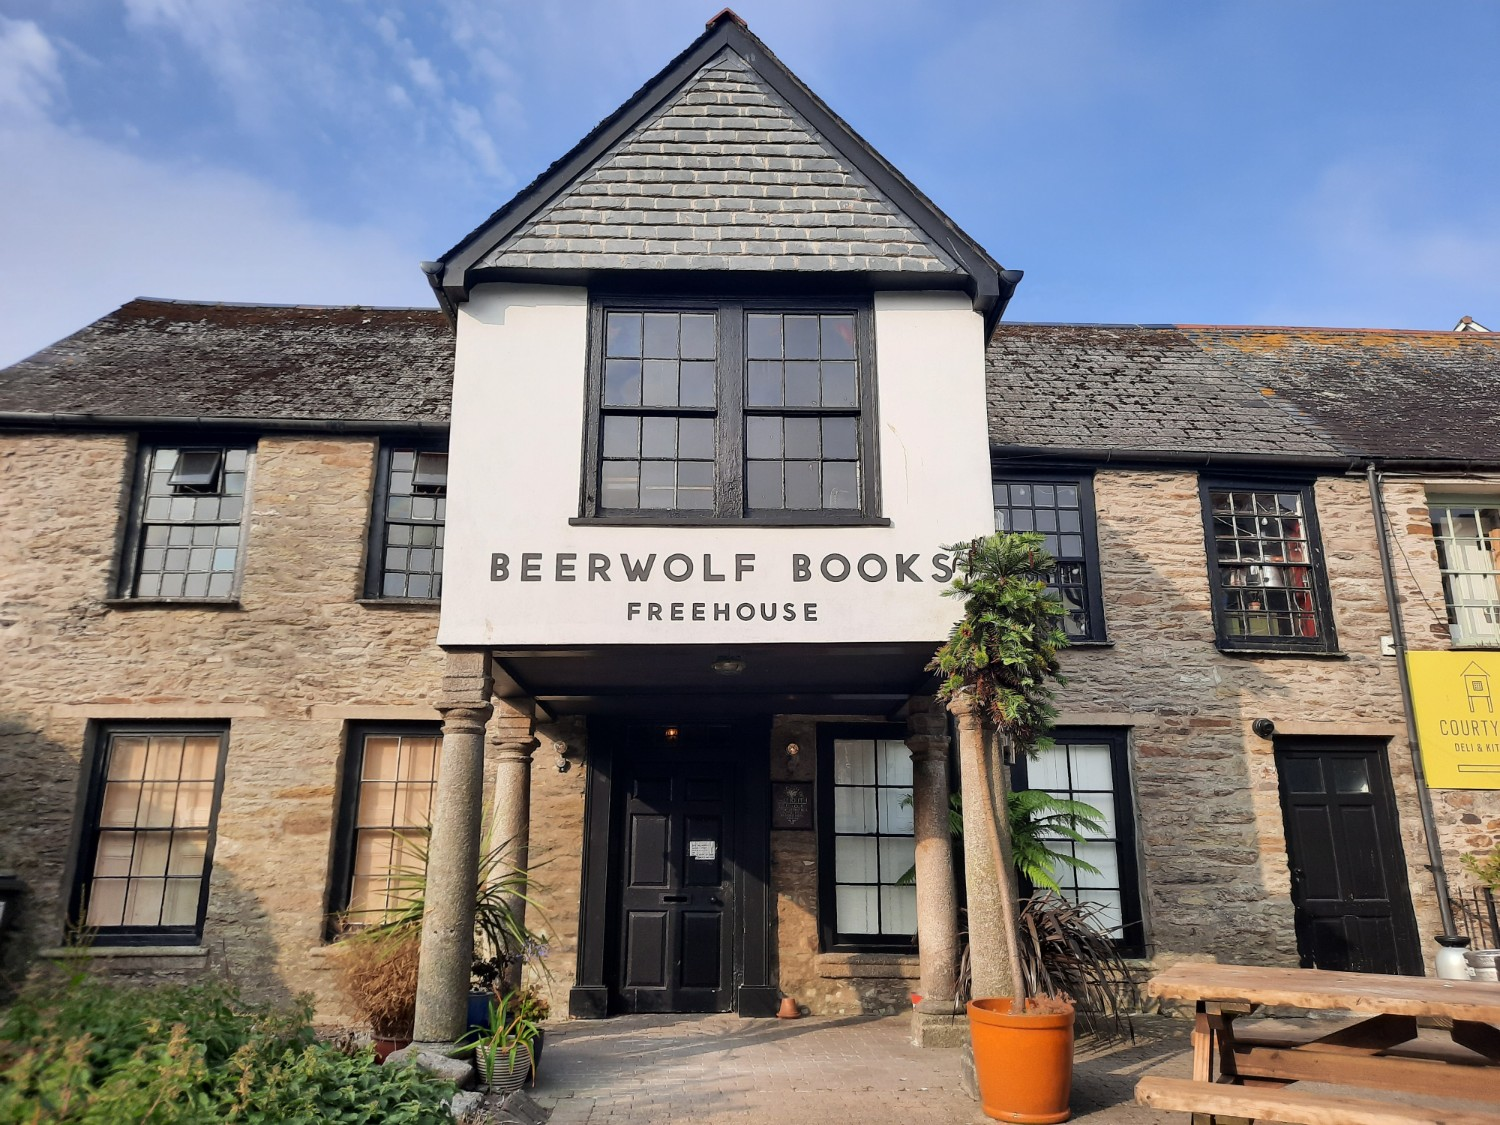 Beerwolf Books in Falmouth Cornwall